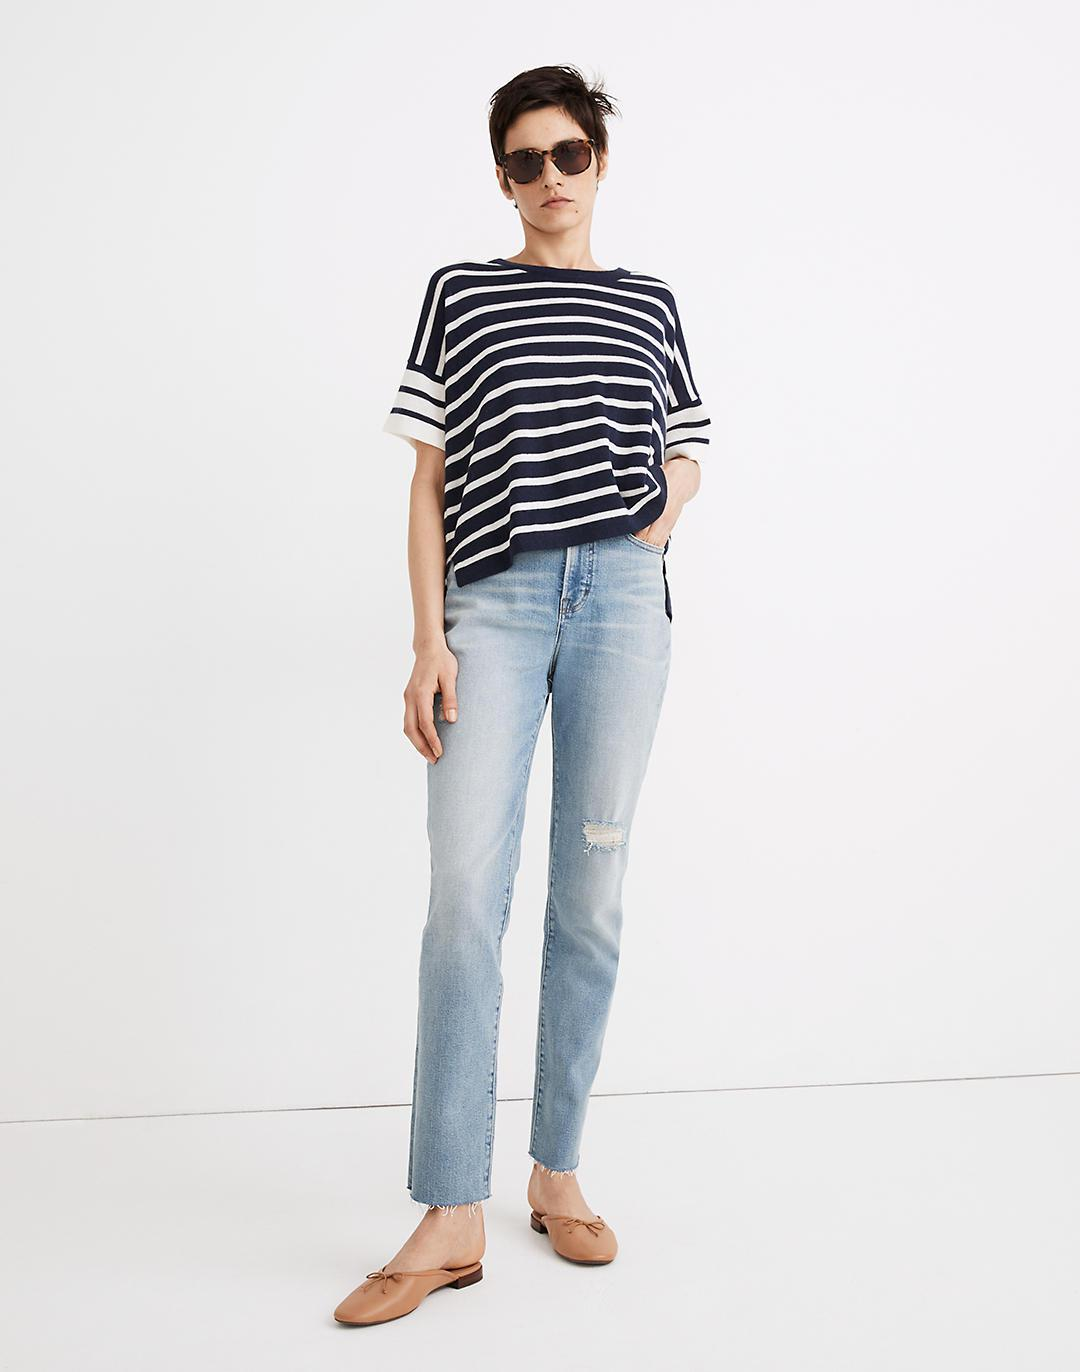 (Re)sponsible Weightless Cashmere Sweater Tee in Stripe